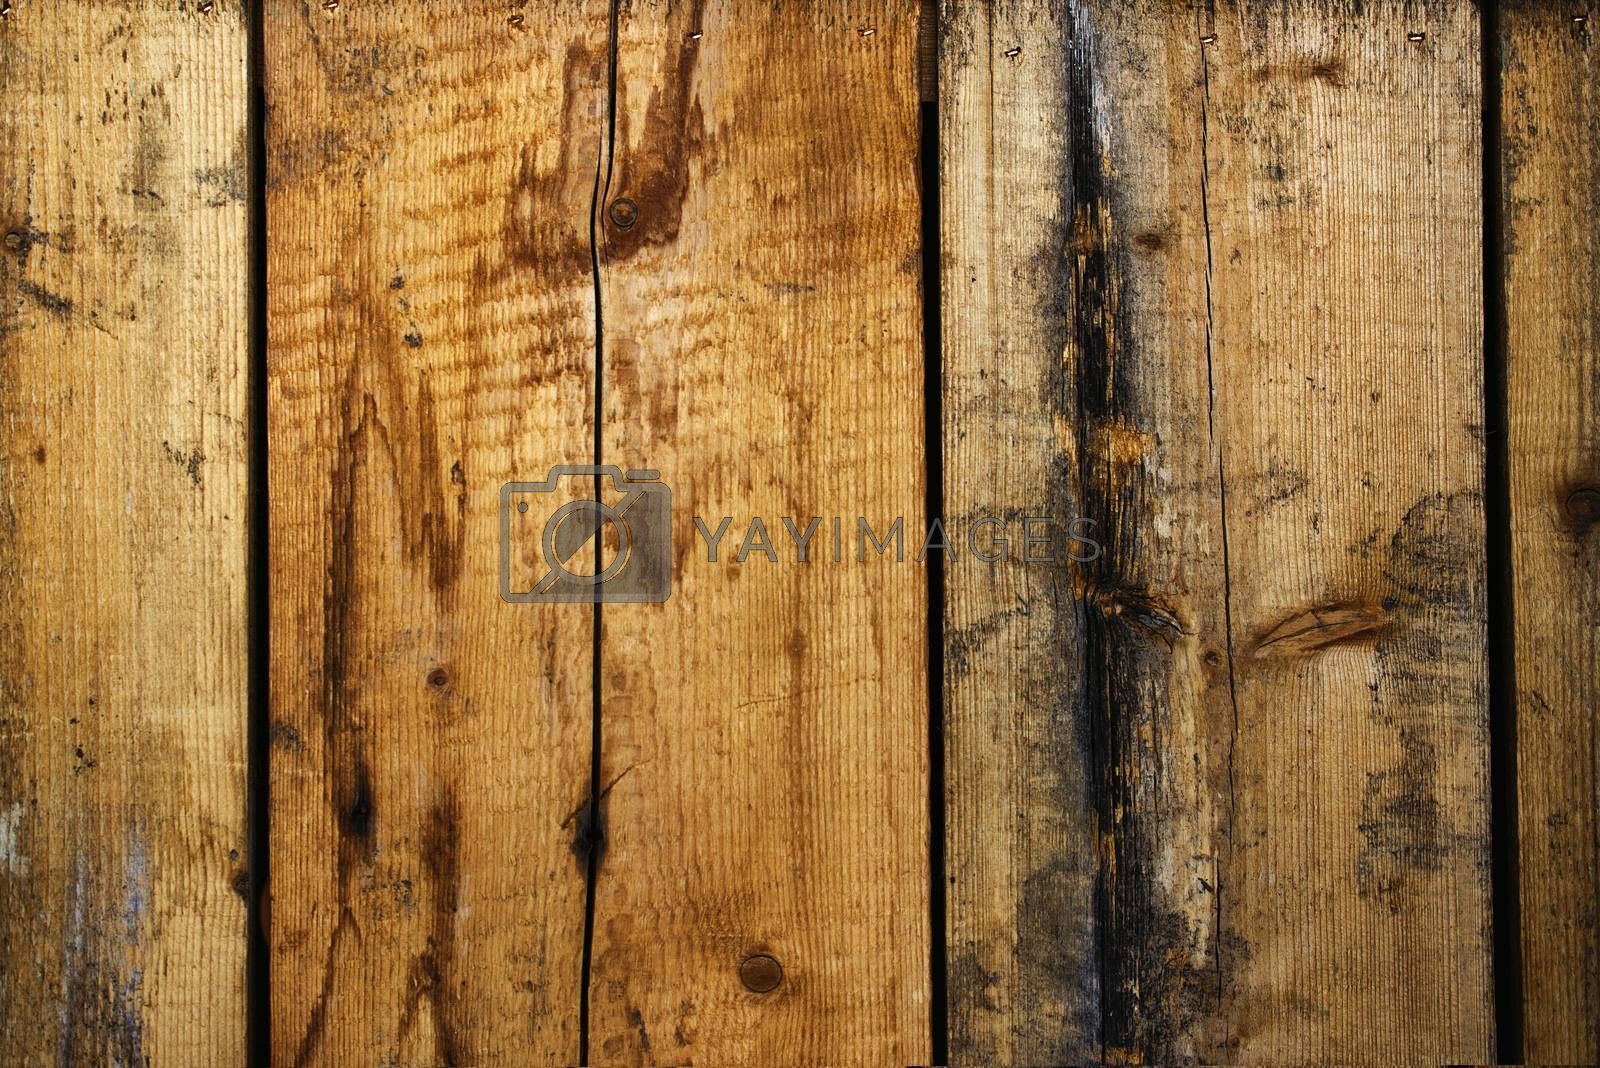 Rough wooden planks texture, old used weathered boards